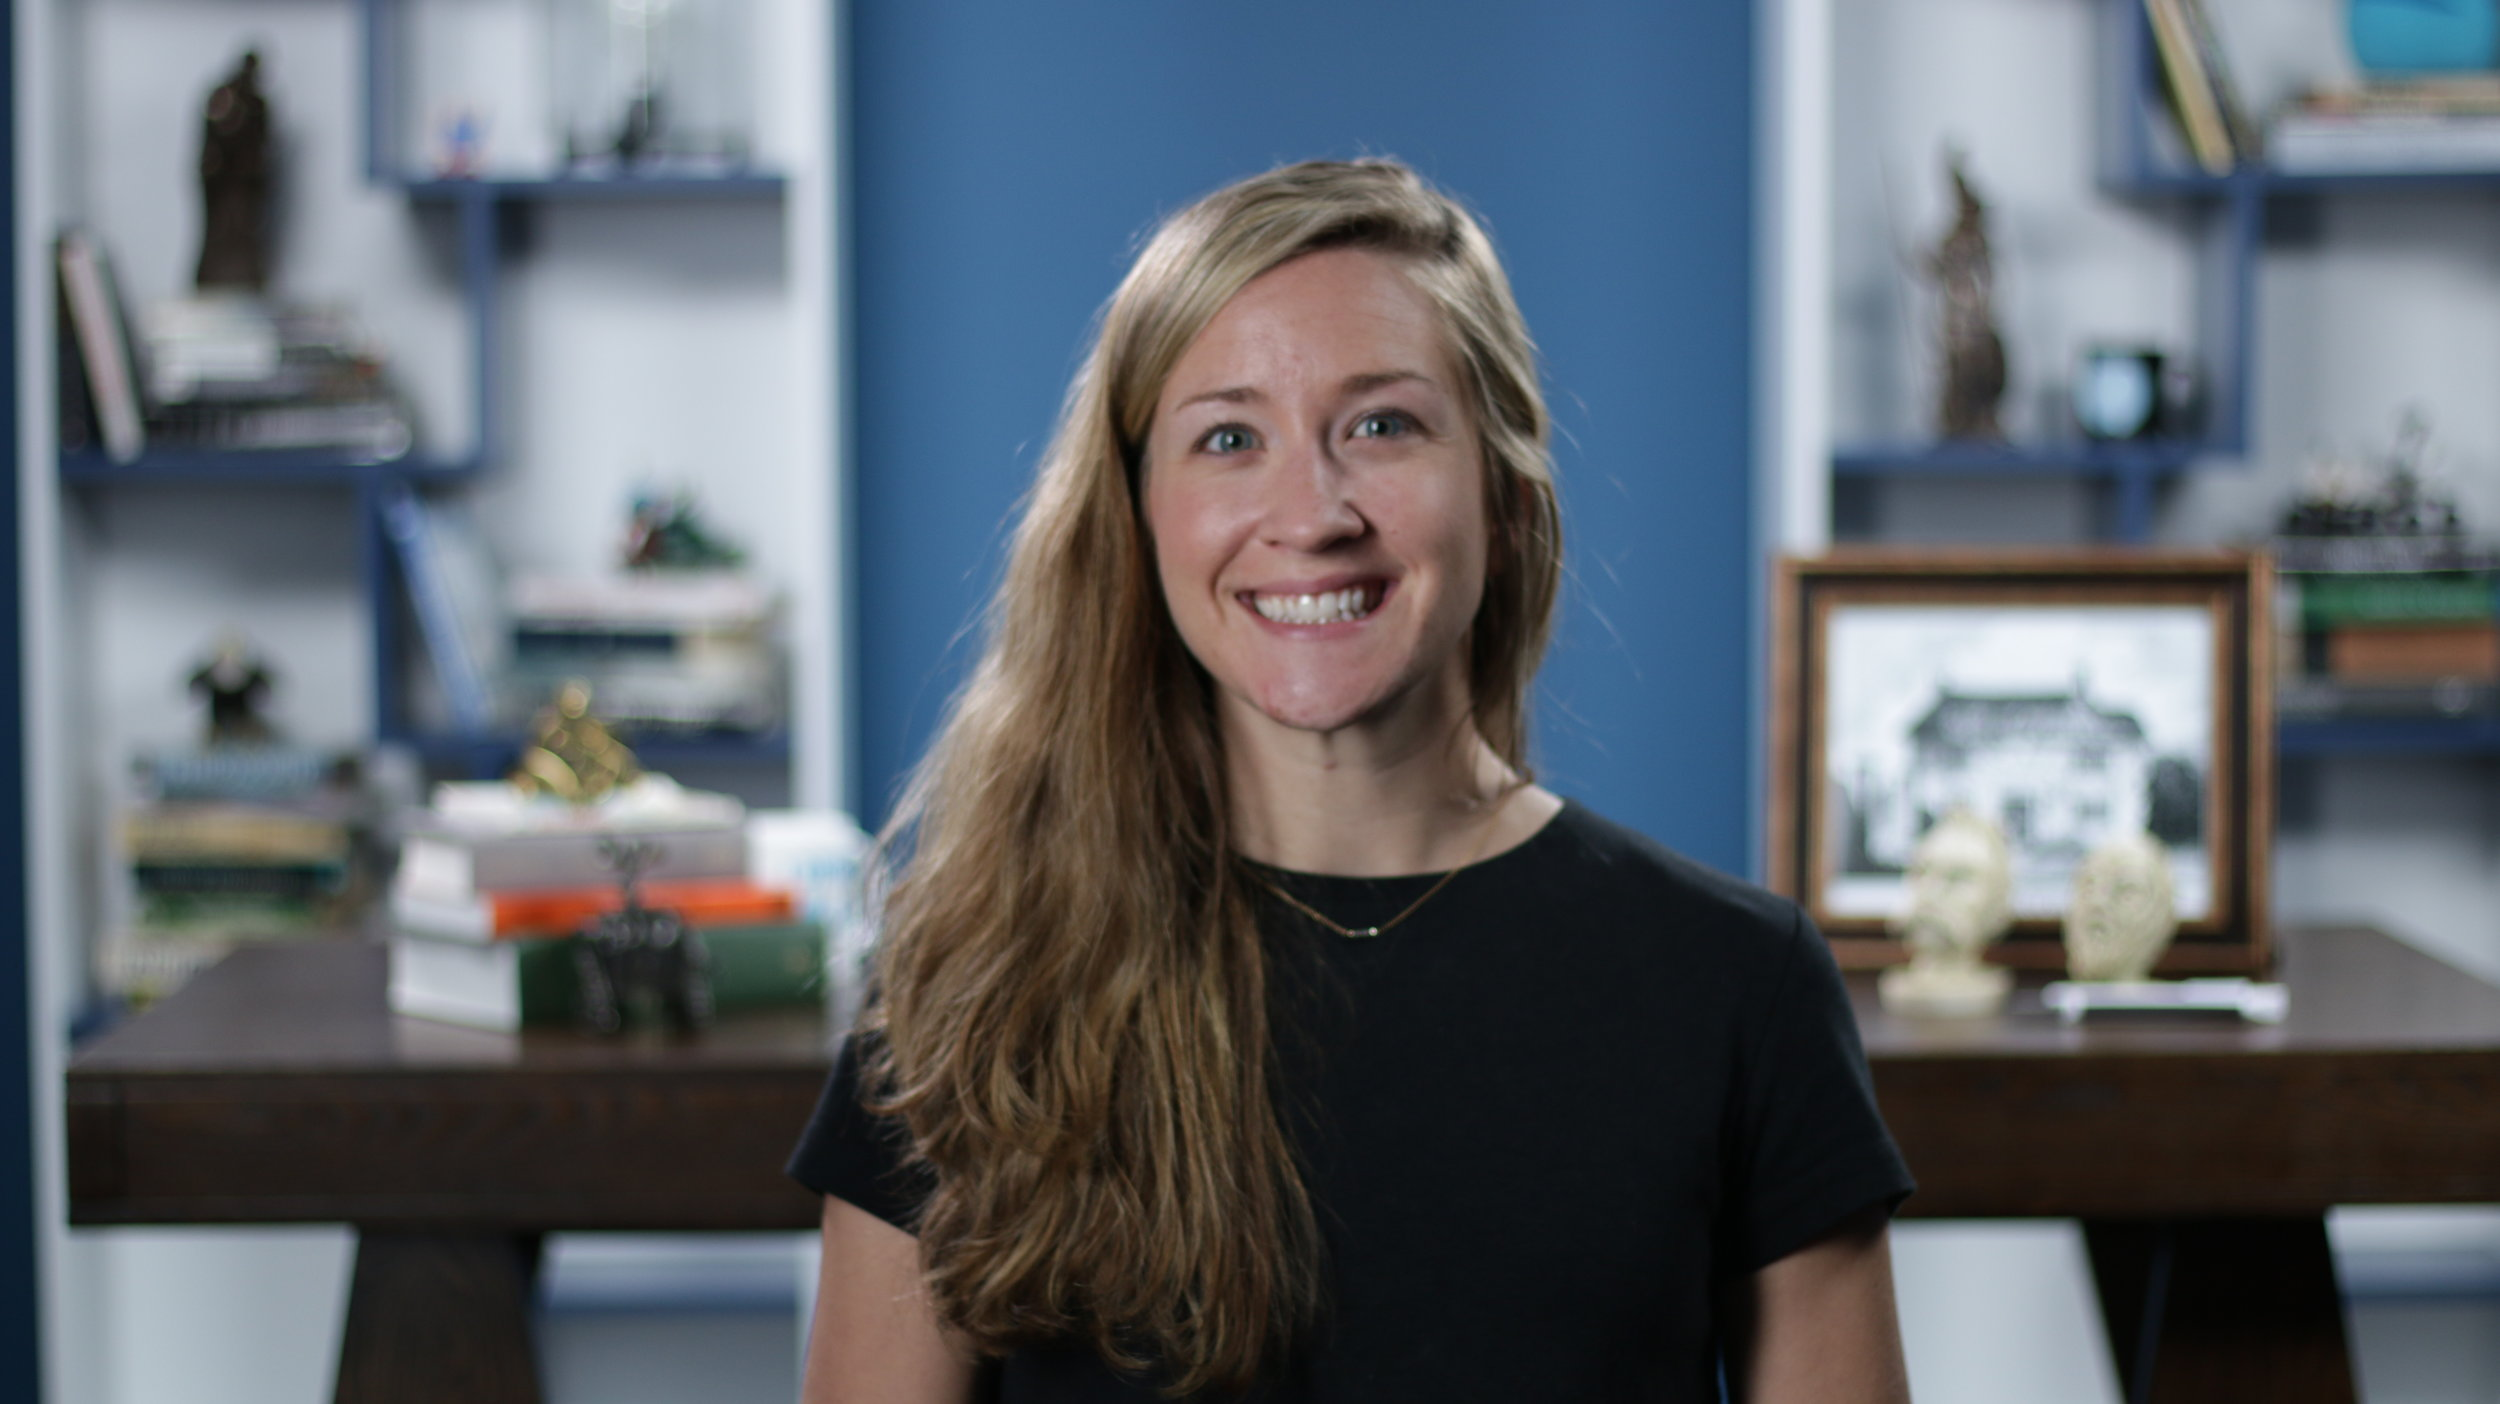 Julie Walsh Chief Operating Officer  Julie spends her time asking Hank and John what they want to do. She also just waters her plant and lurks around the office trying to make use of her Psychology degree. In her spare time, she enjoys running, hiking, random volunteering and other forms of Type II fun.